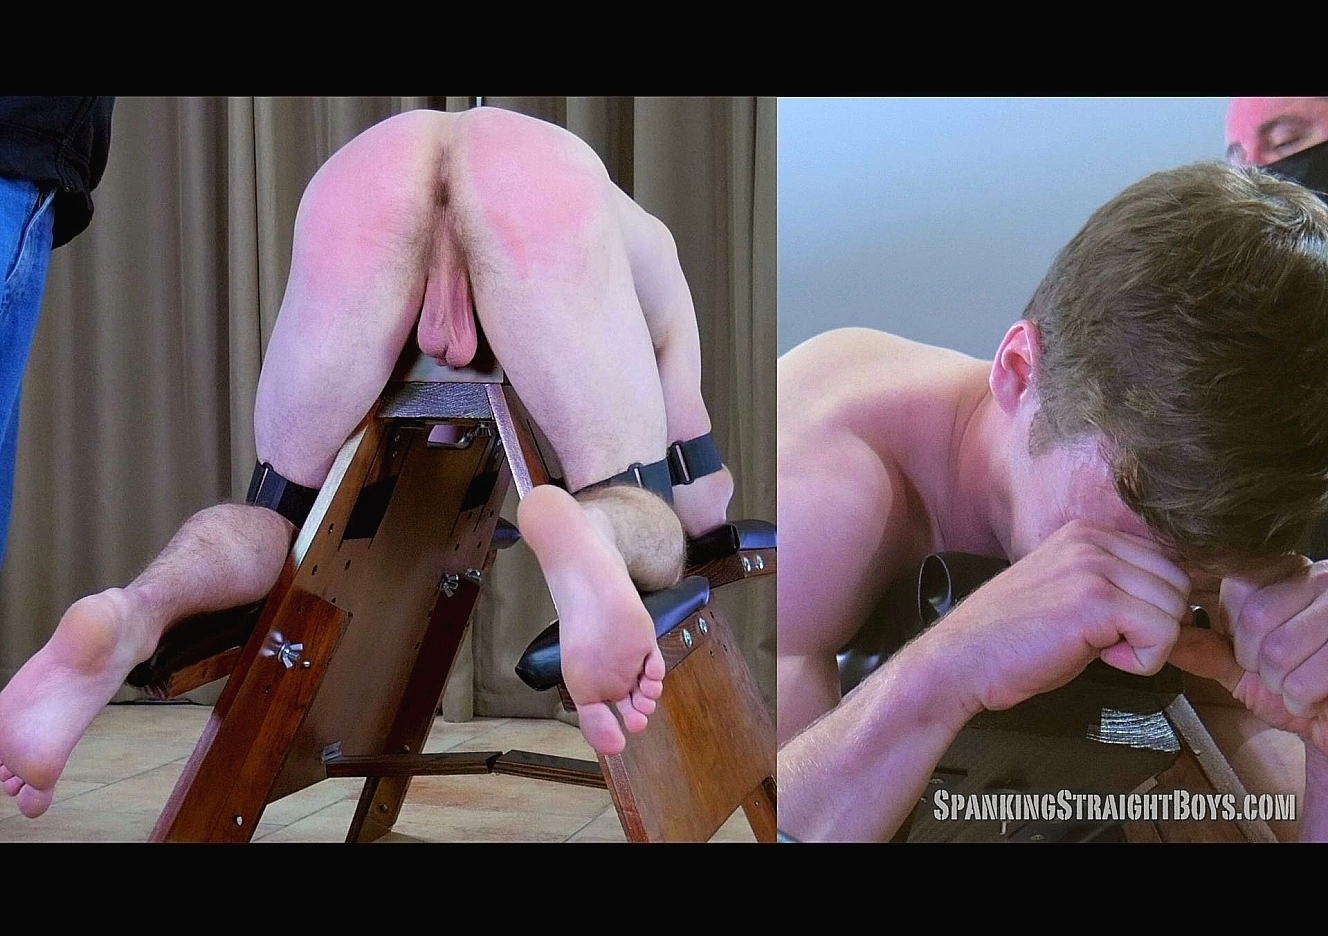 content/180710101-patrick-on-the-spanking-bench/0.jpg